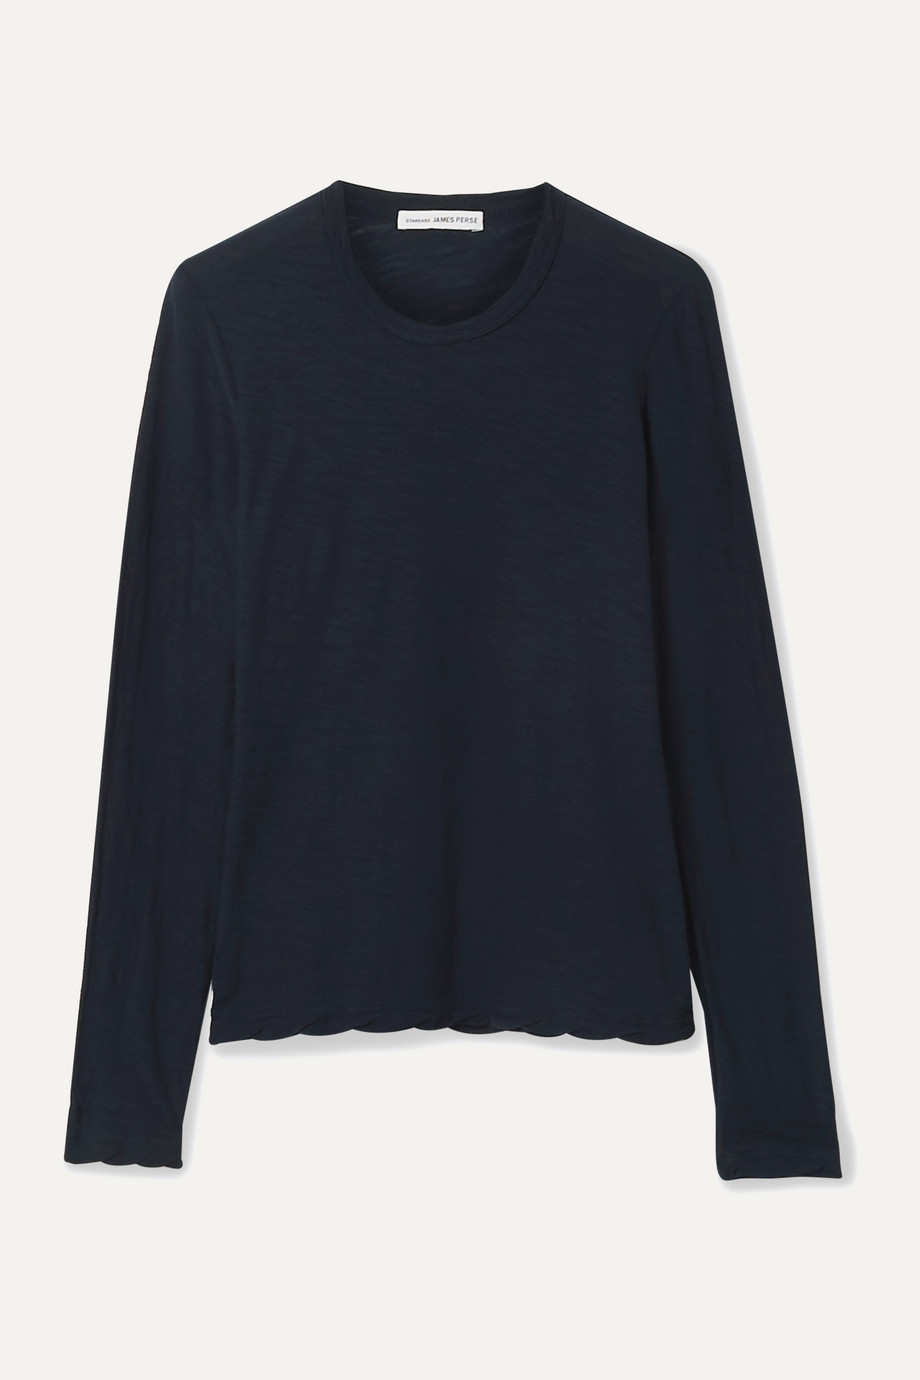 James Perse Slub Supima cotton-jersey top